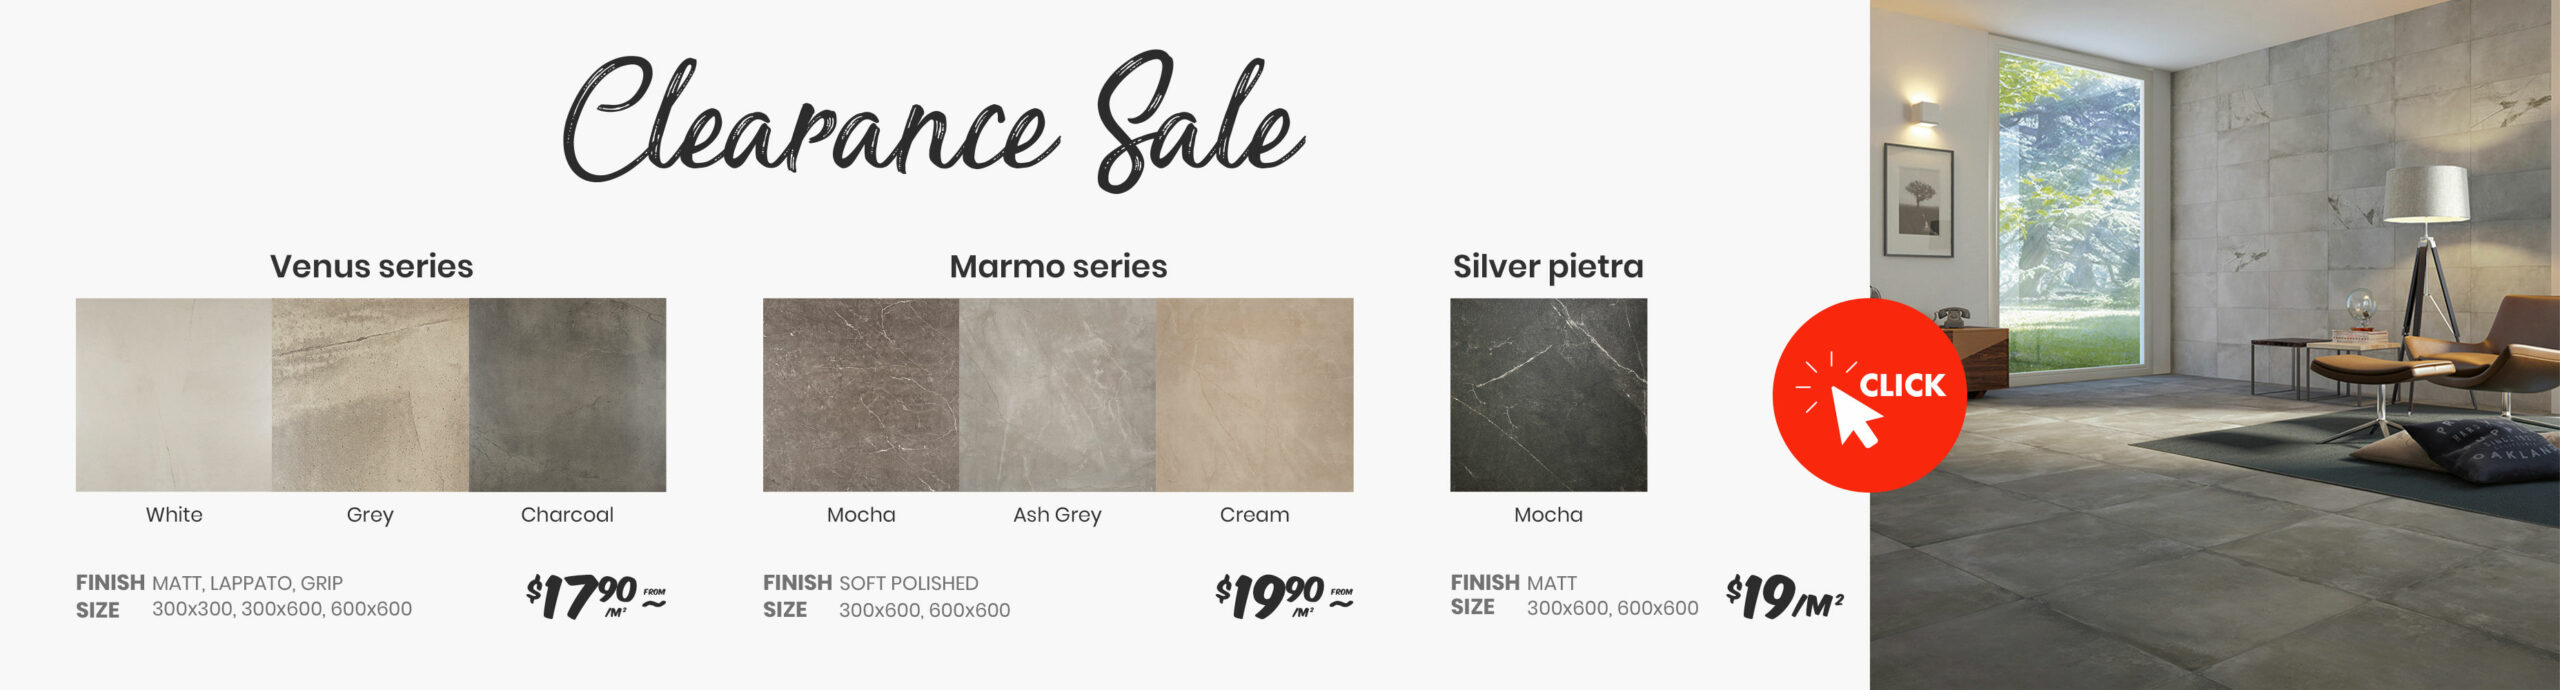 clearance tiles - venus series/marmo series/silver pietra